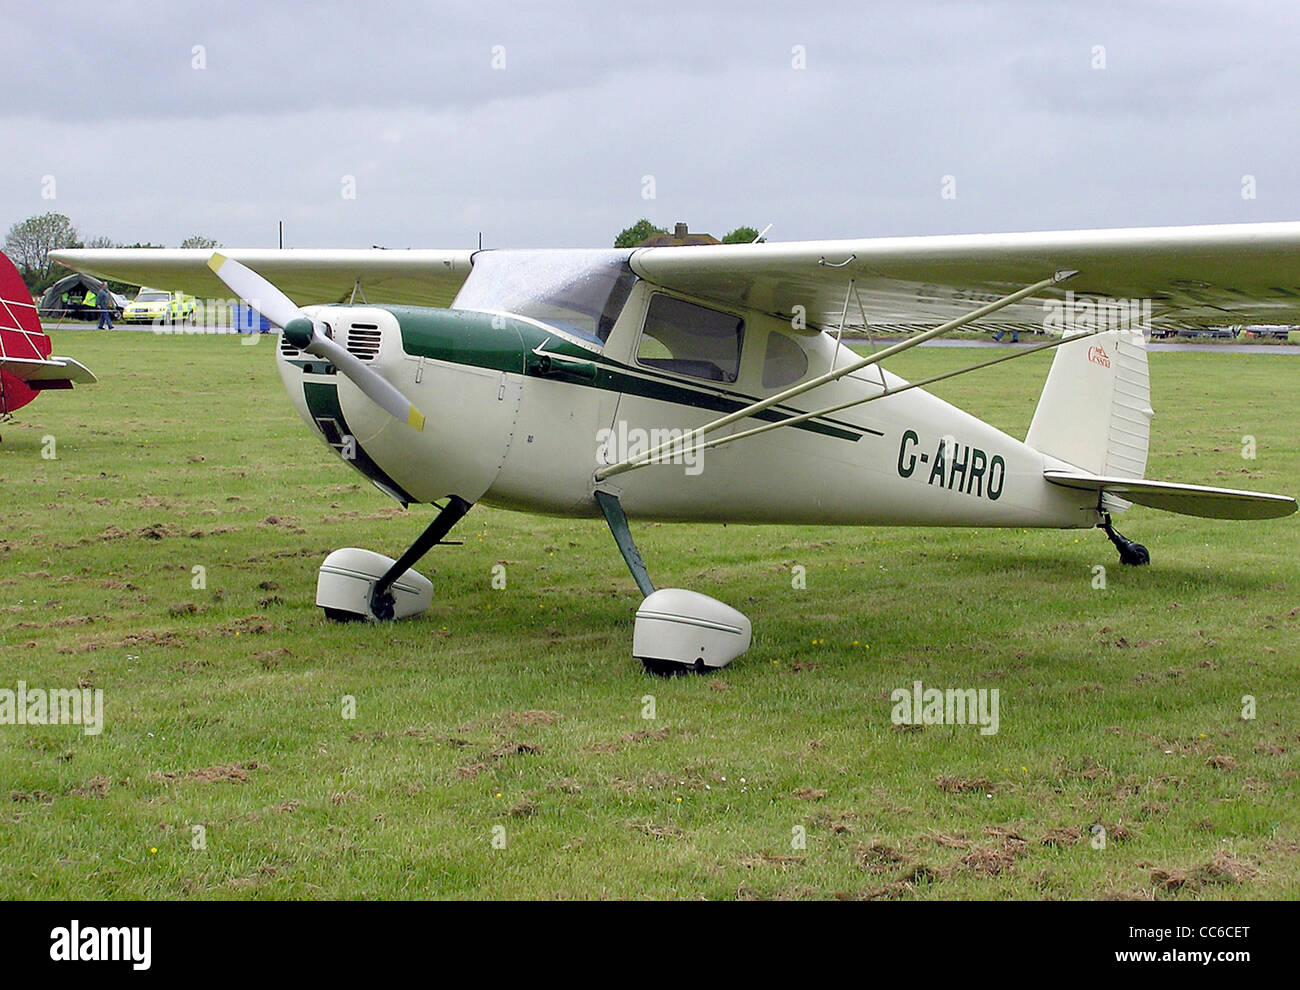 1946 Cessna 140 (G-AHRO) at Hullavington airfield, Wiltshire, England. - Stock Image